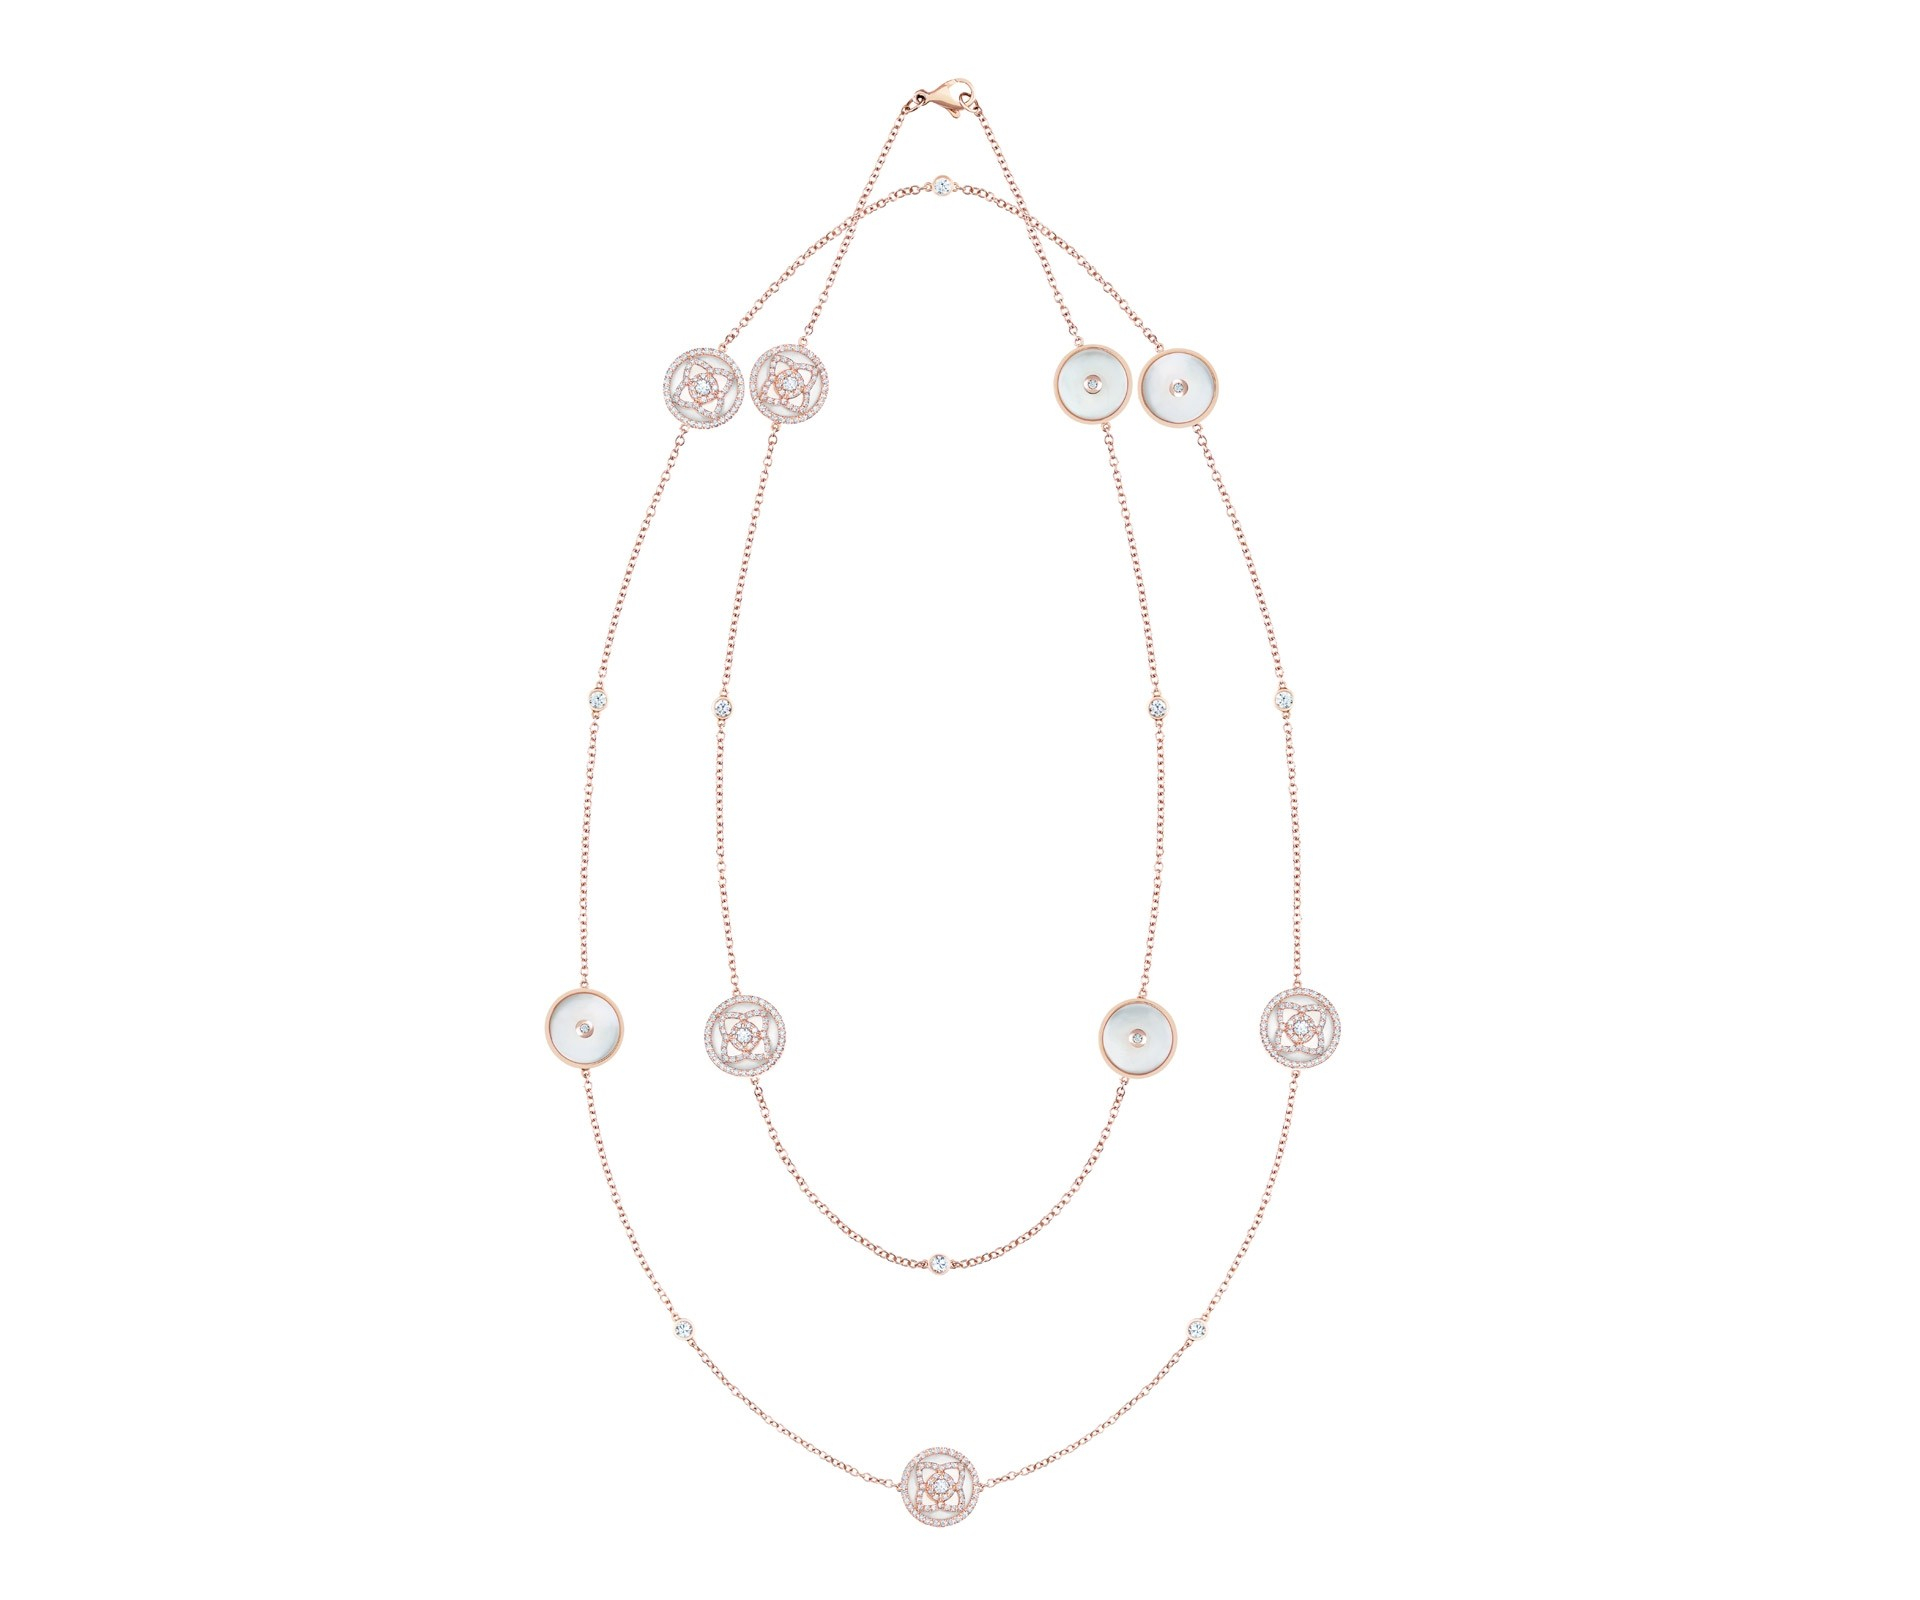 Enchanted Lotus Rose Gold & White Mother Of Pearl Sautoir Necklace With Regard To Recent Yellow Gold Diamond Sautoir Necklaces (View 7 of 25)